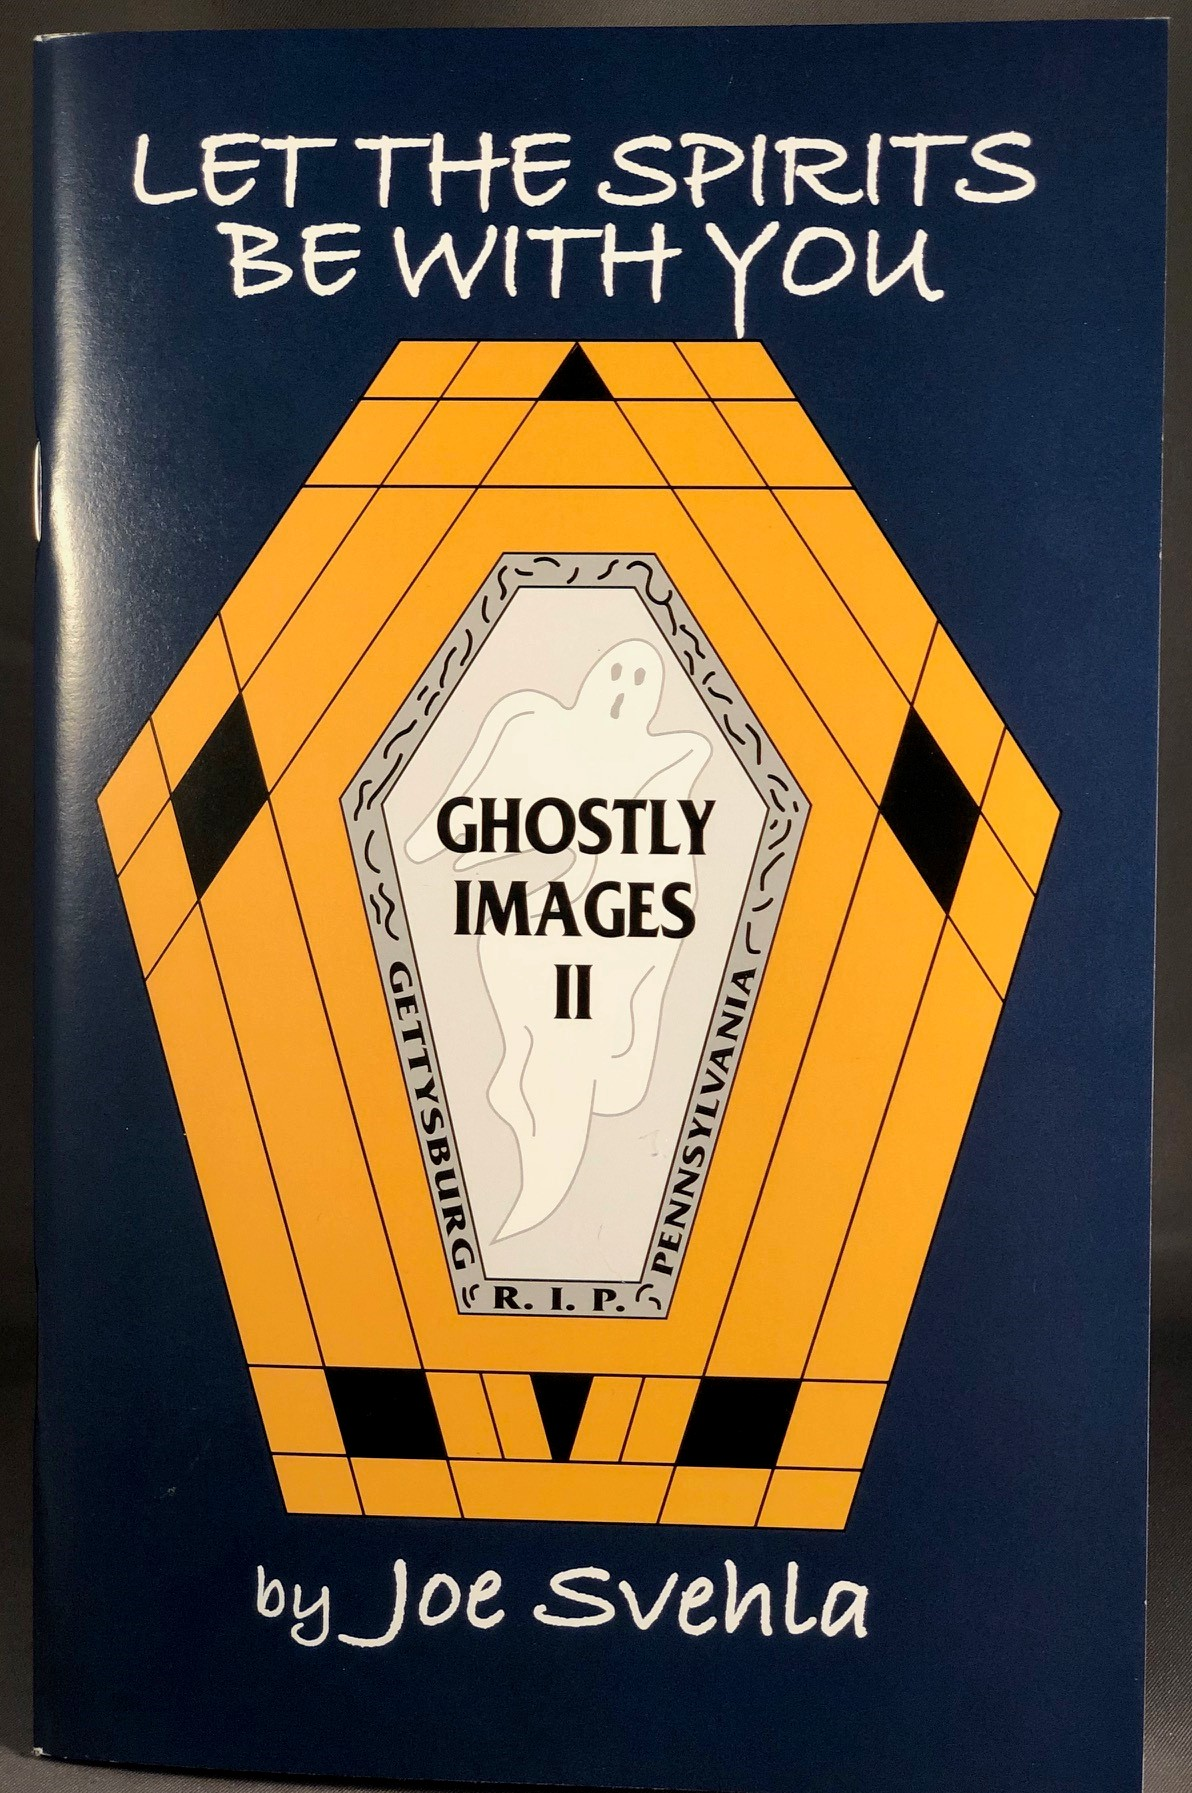 Ghostly Images II Let the Spirits Be With You by Joe Svehla book cover